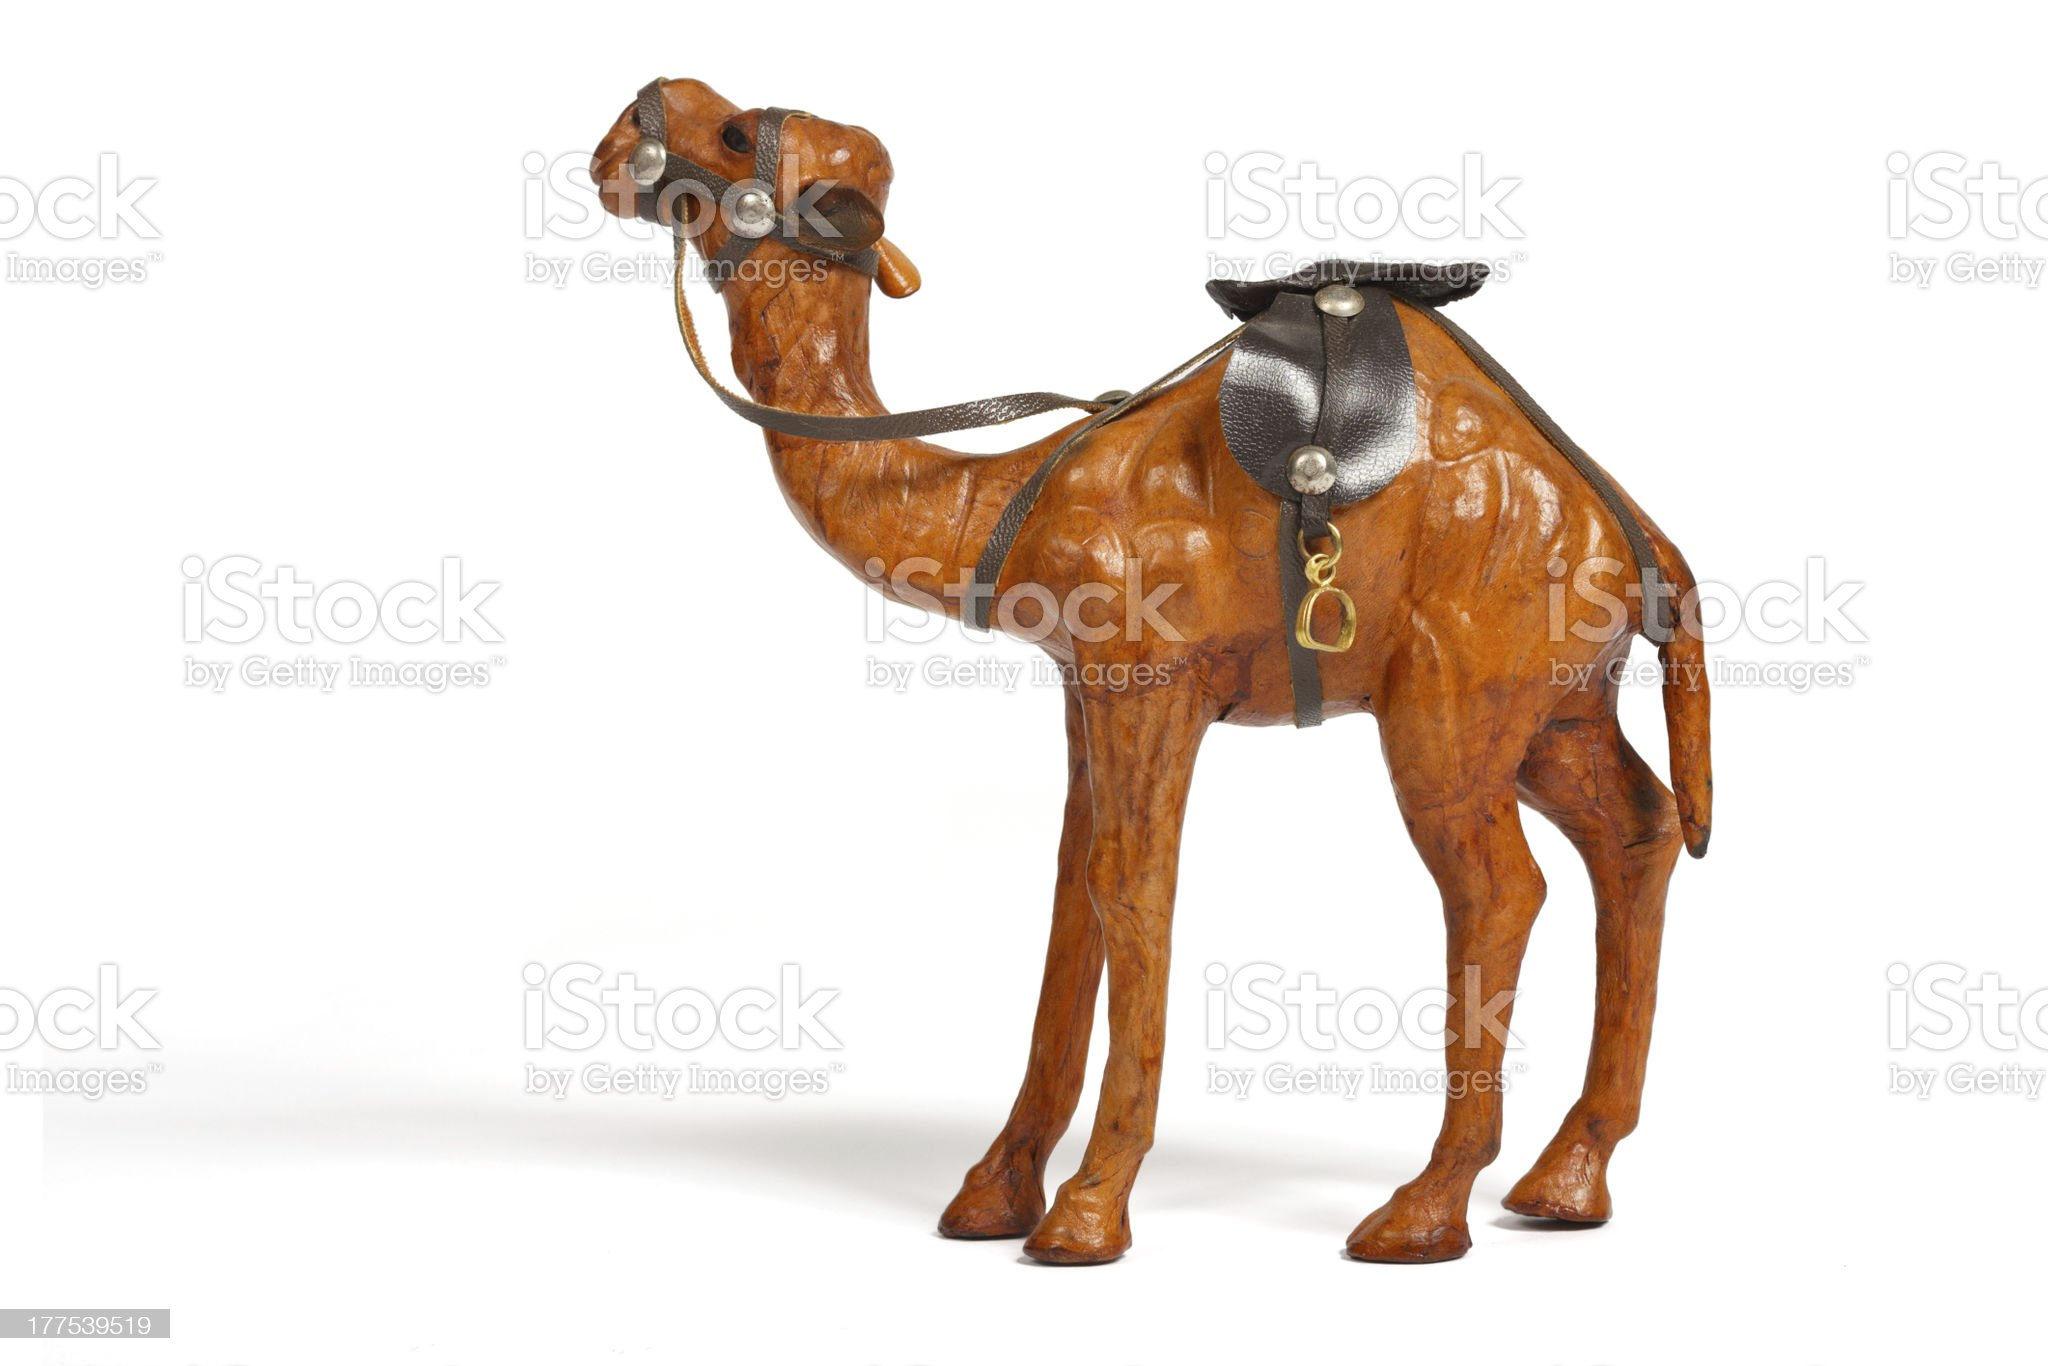 Closeup of brown camel souvenir made from leather royalty-free stock photo